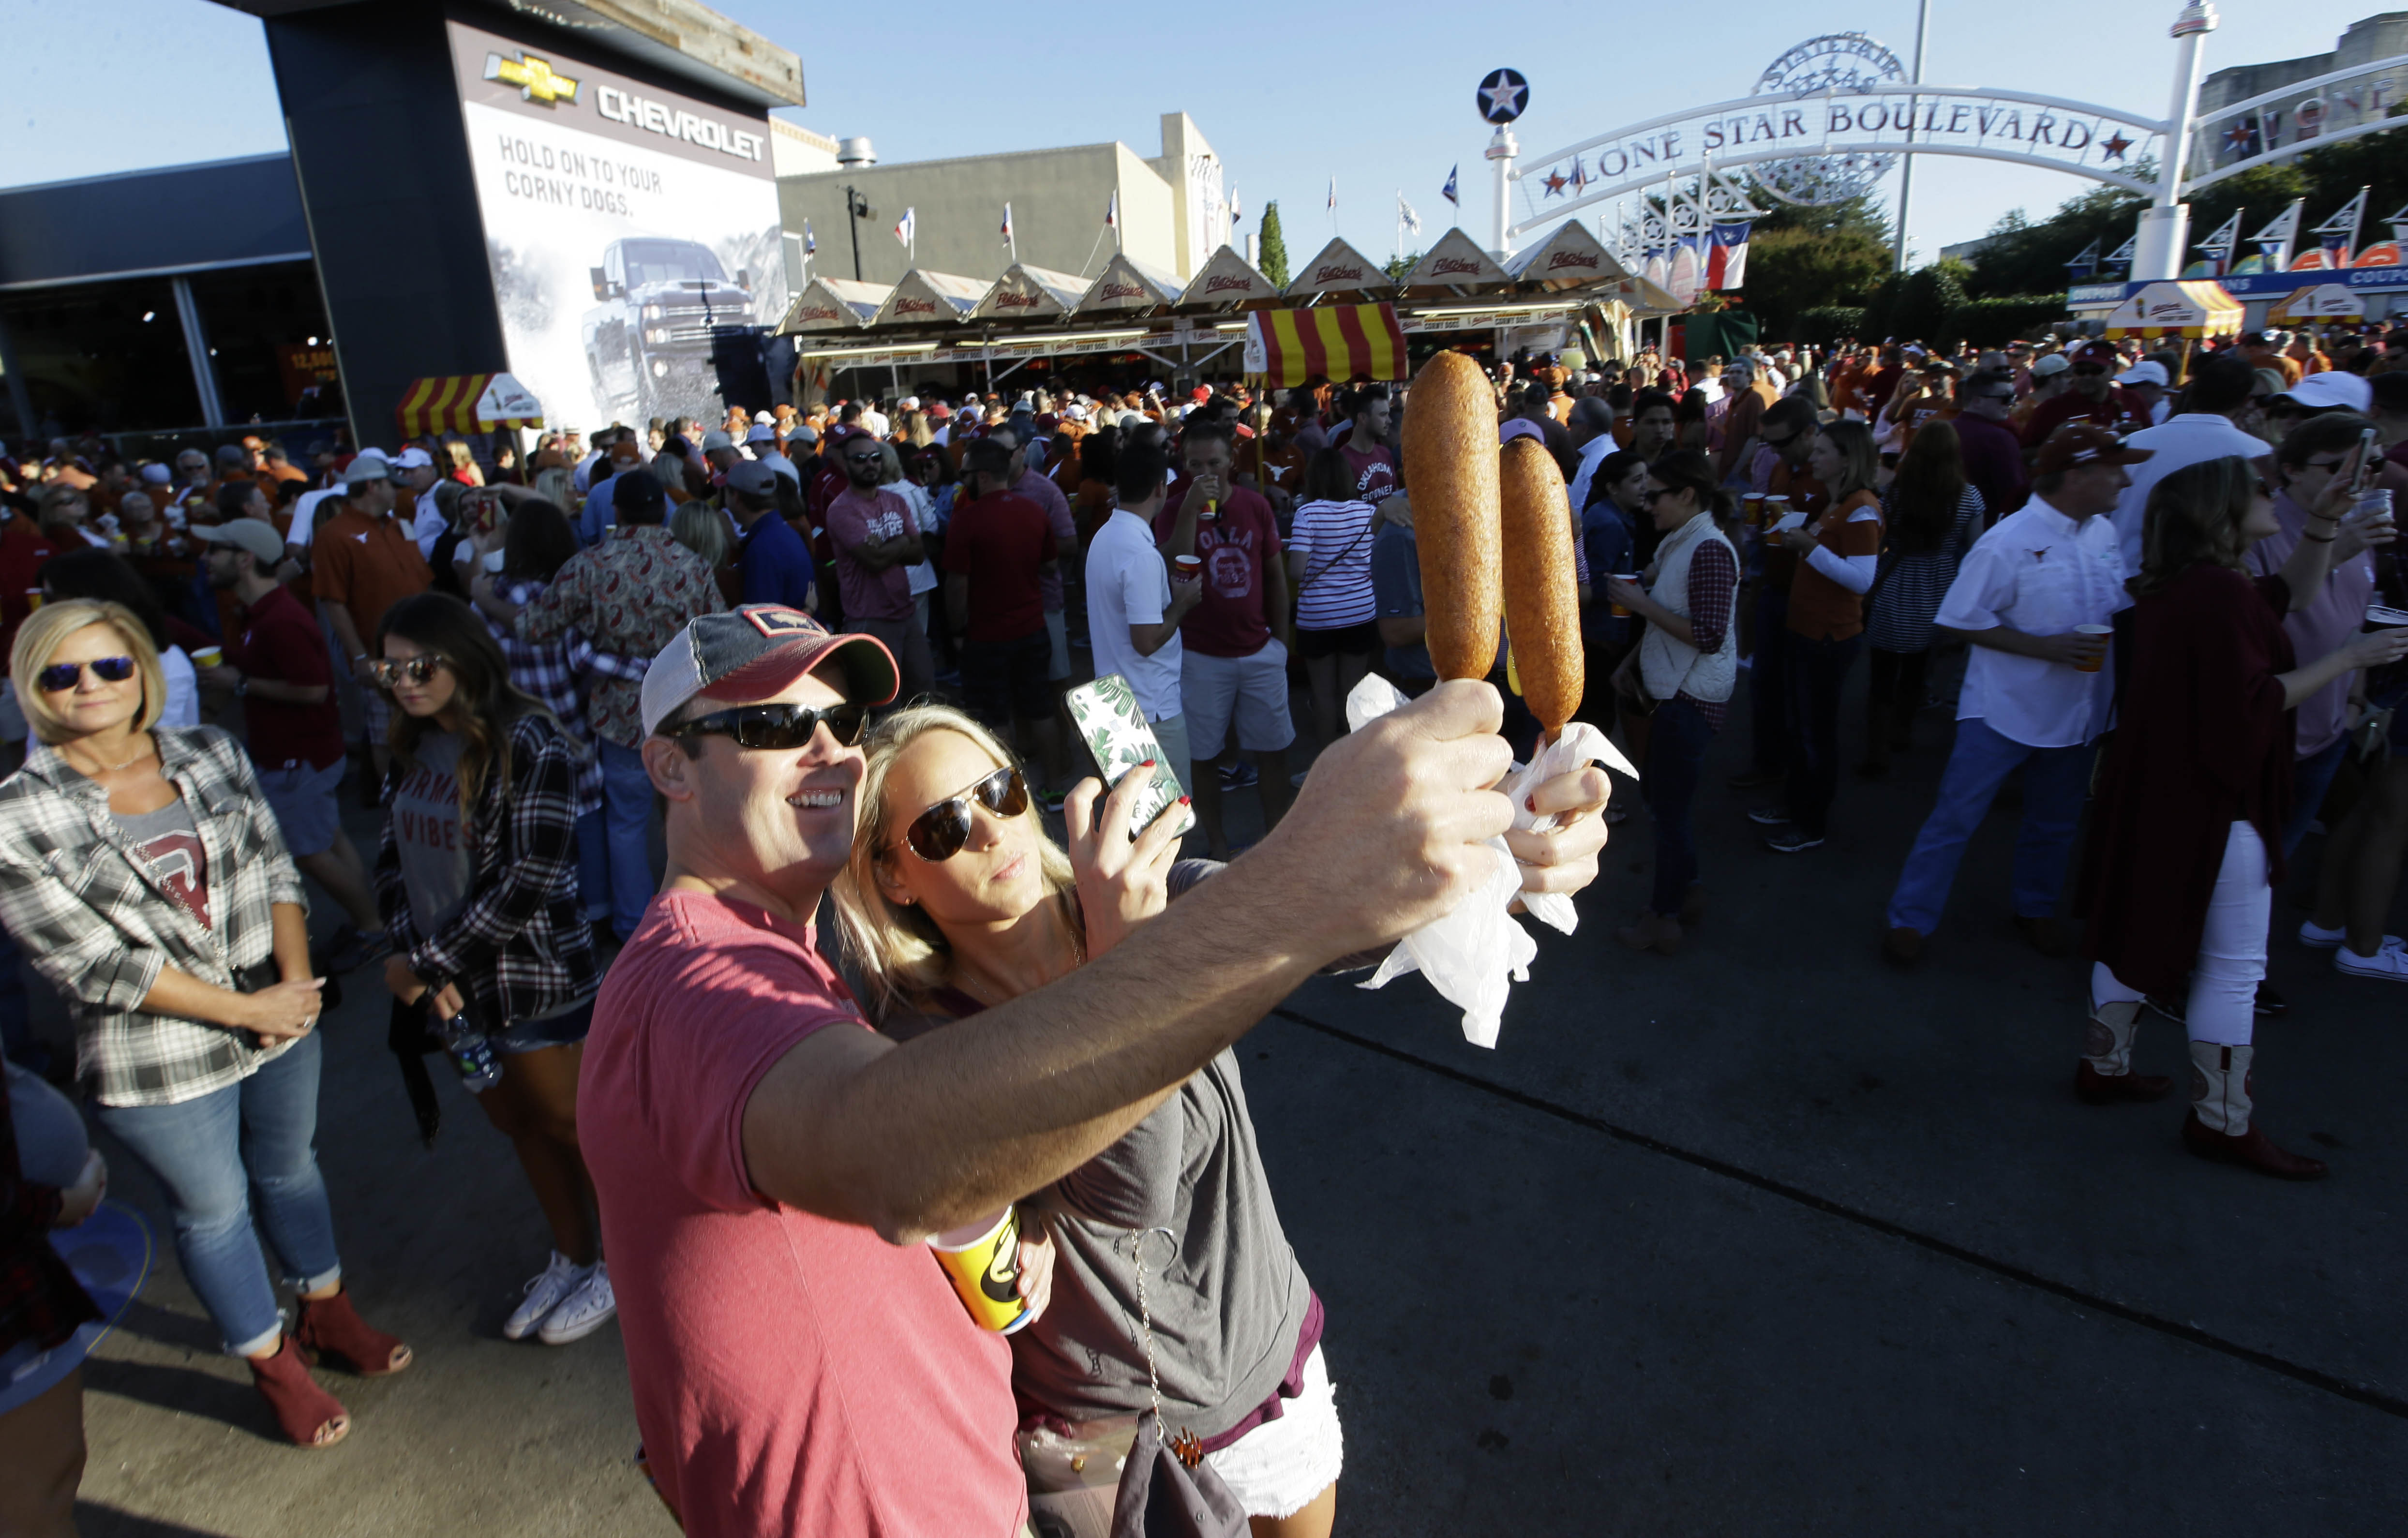 FILE - In this Oct. 8, 2016, file photo, Gwin Huey, right, and her husband, Ryan Huey, make a photo of their corn dogs at the state fair before an NCAA college football game between Texas and Oklahoma in Dallas.Now that the Big 12 has decided to stay at 1